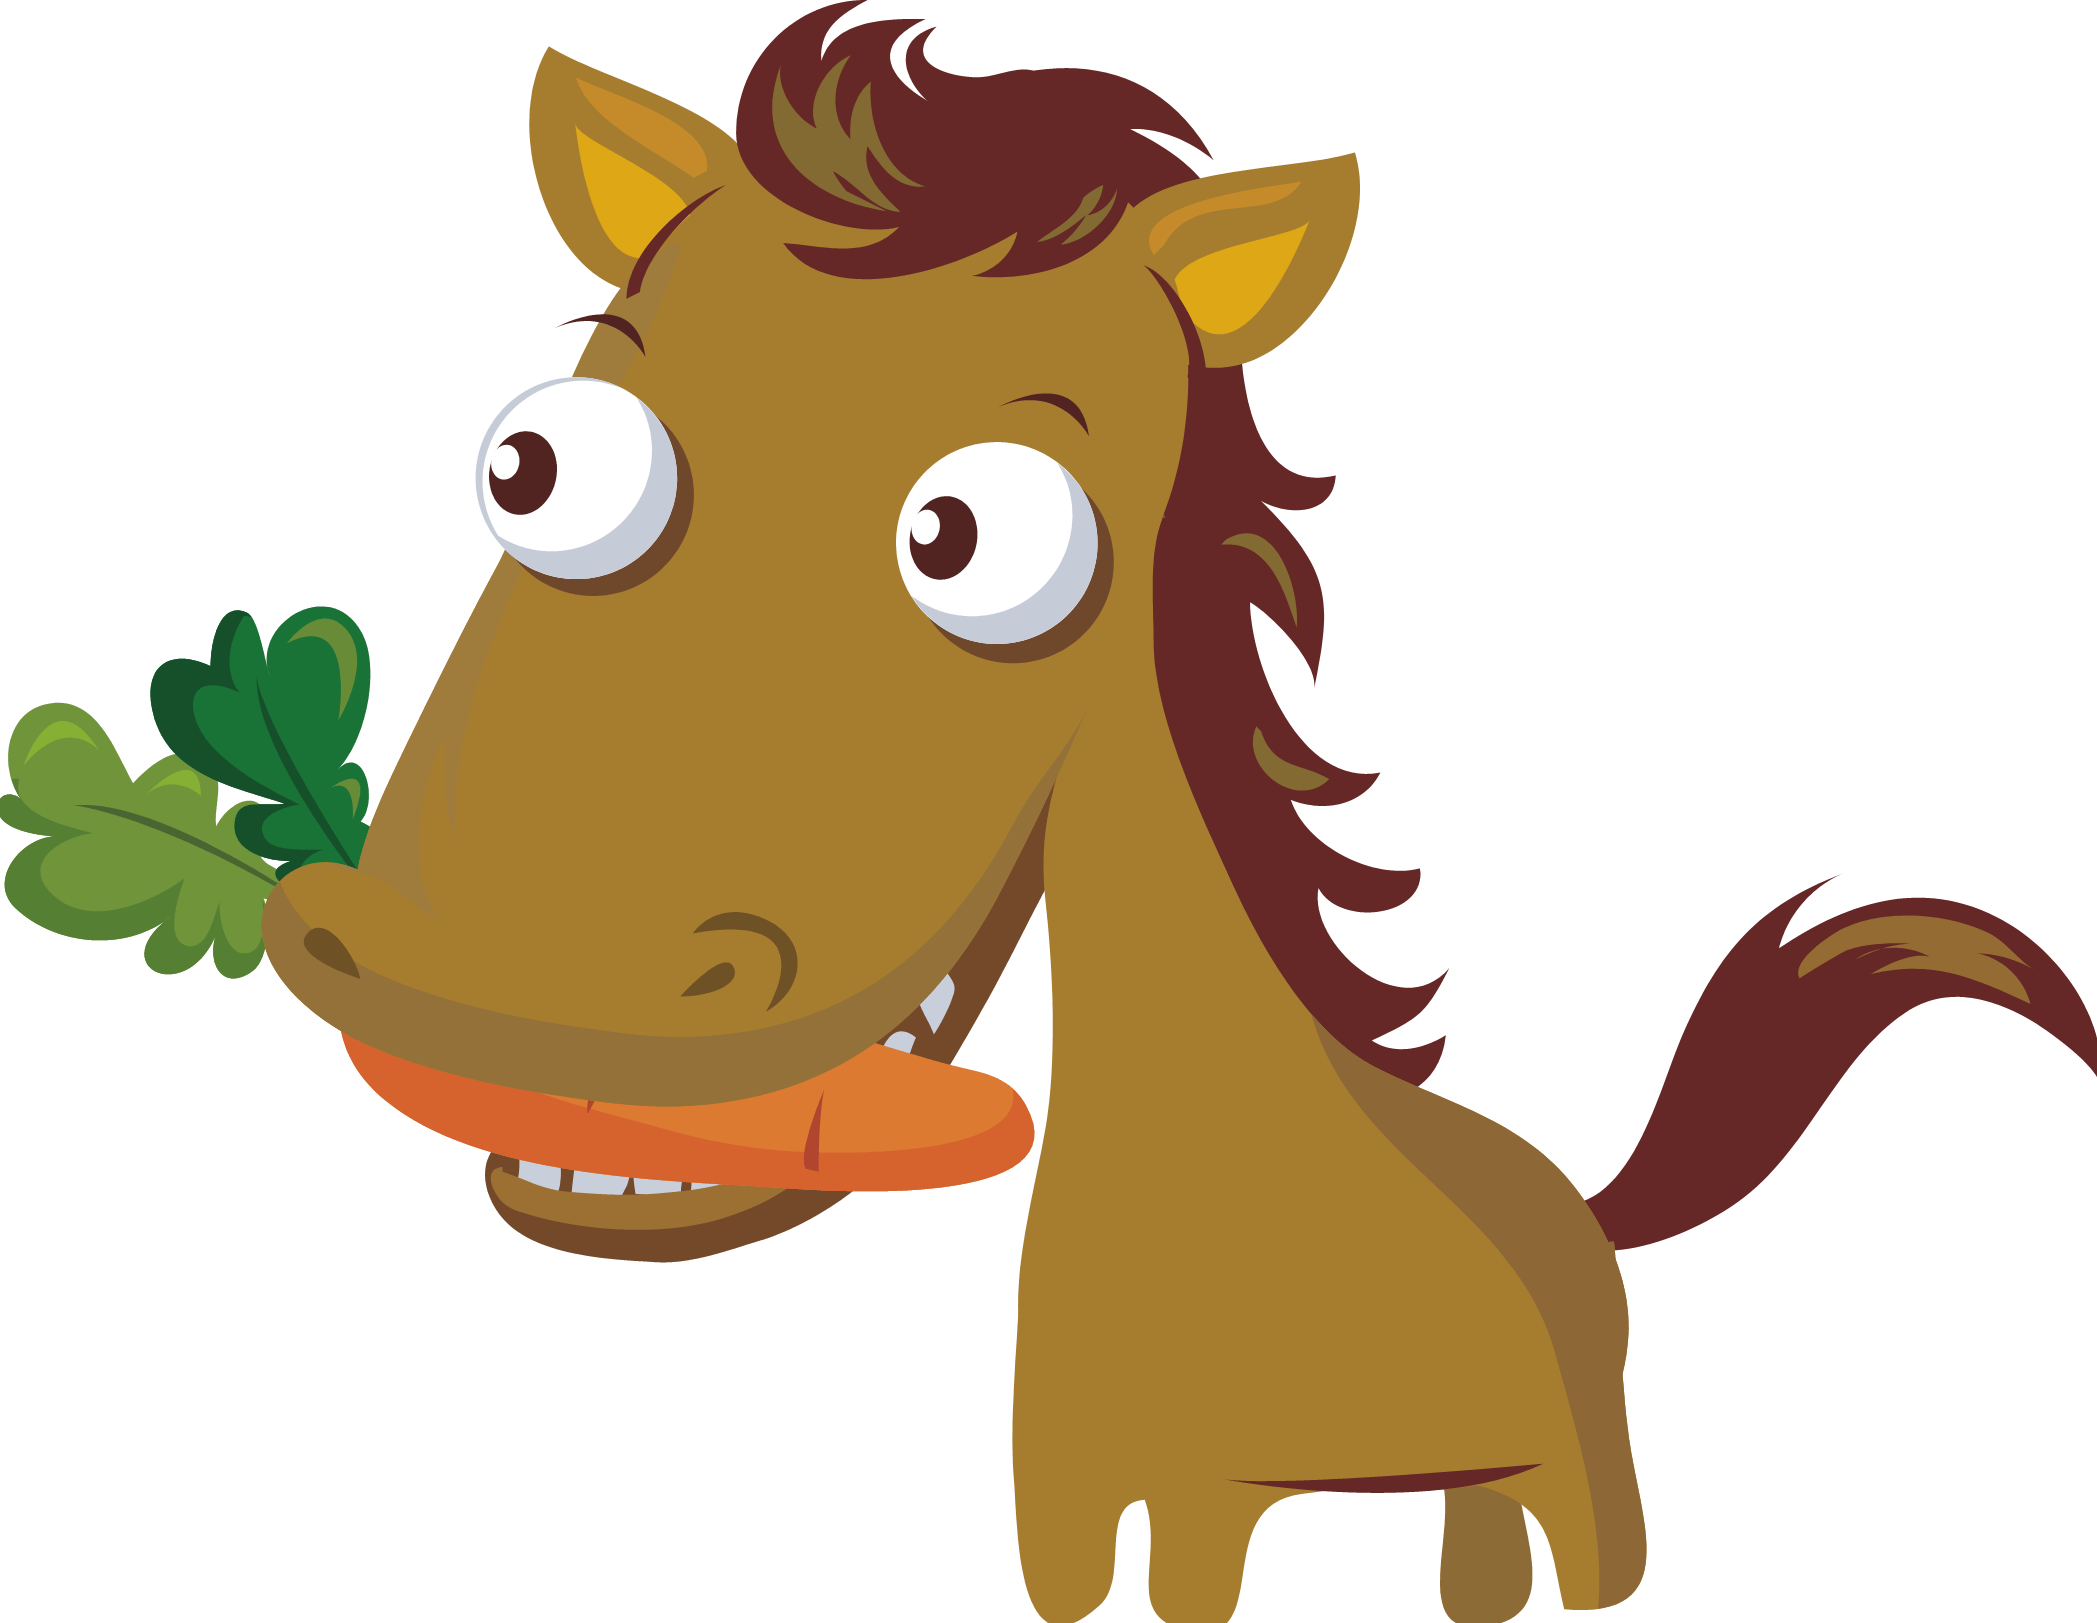 Horse eating an apple clipart vector royalty free Free Horses Eating Cliparts, Download Free Clip Art, Free Clip Art ... vector royalty free